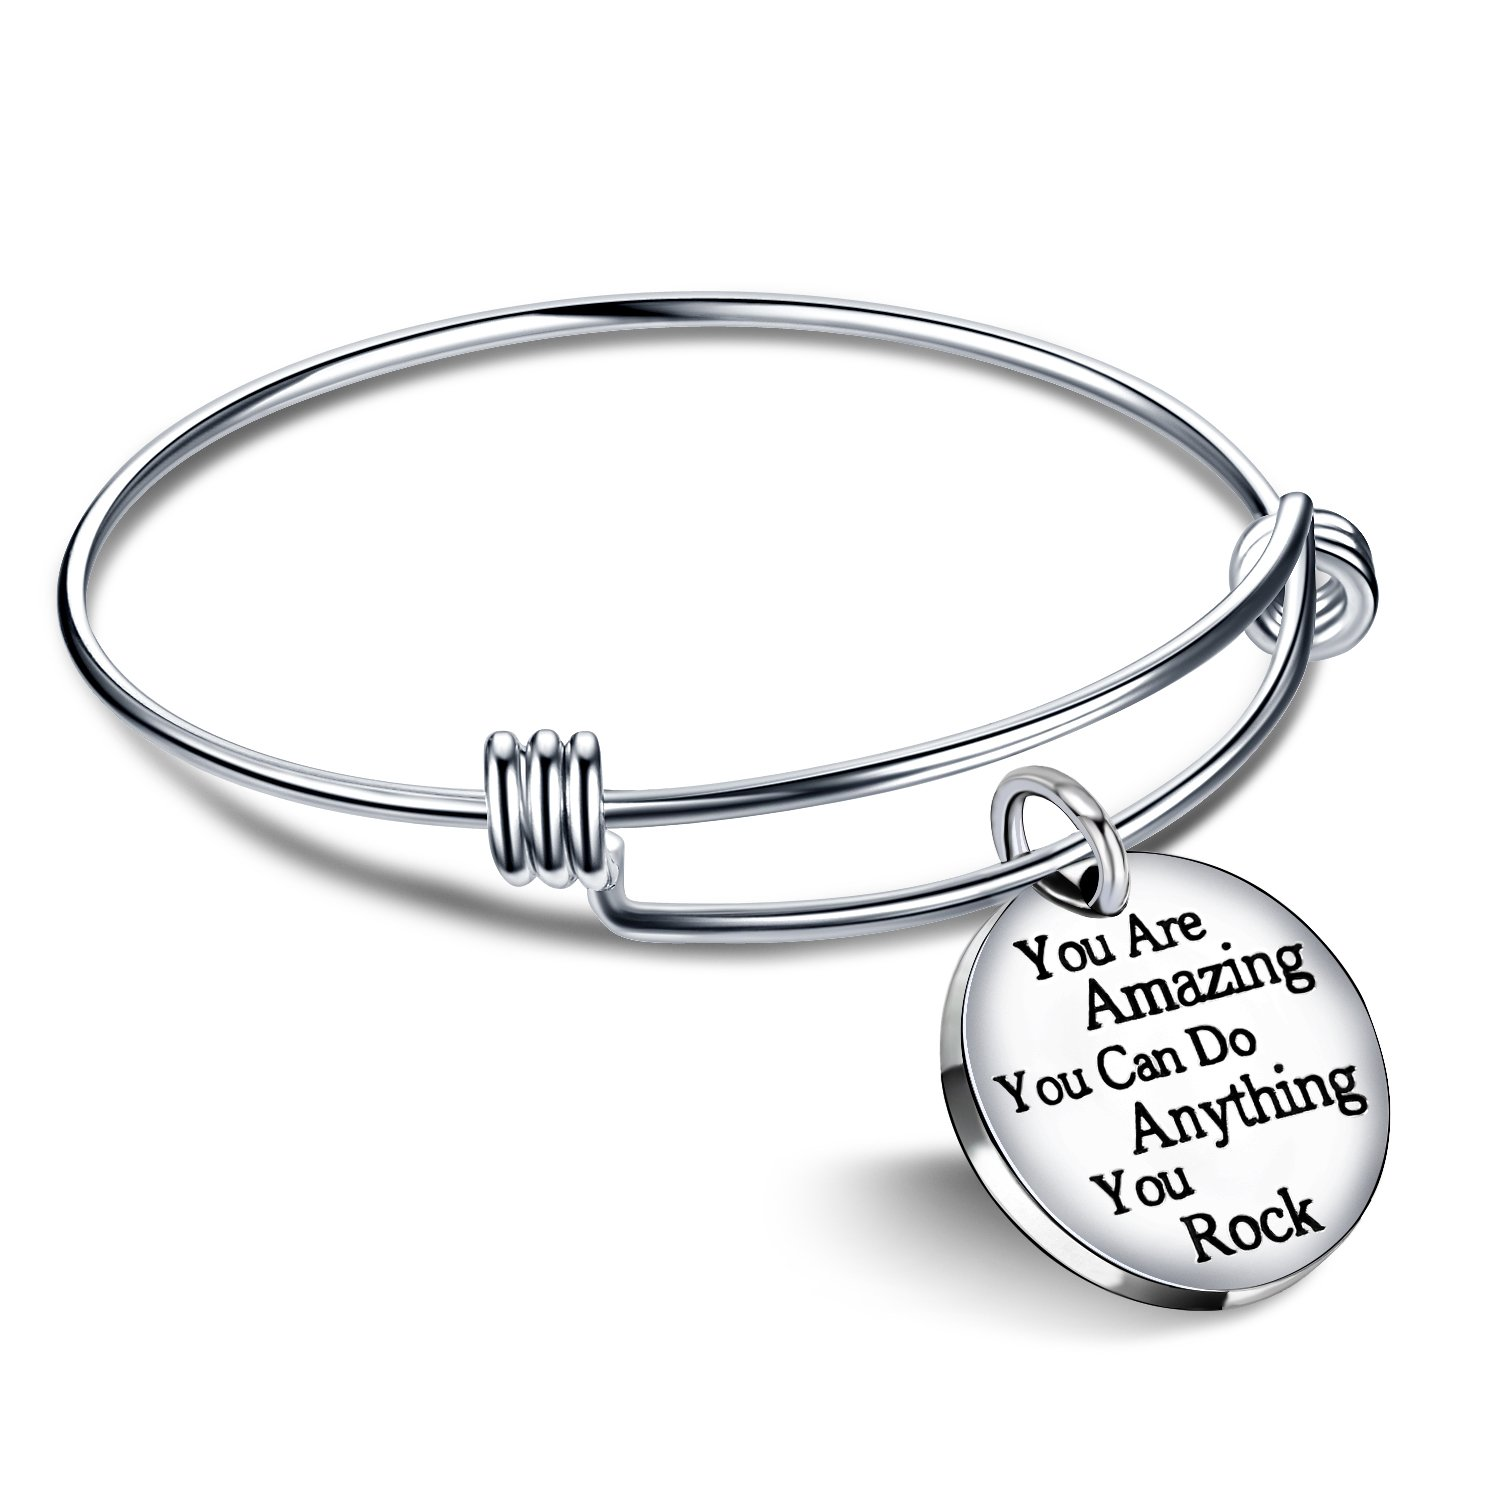 lauhonmin Bangle Bracelets Jewelry for Women Mens Birth Gift You are Amazing You Can Do Anything You Rock